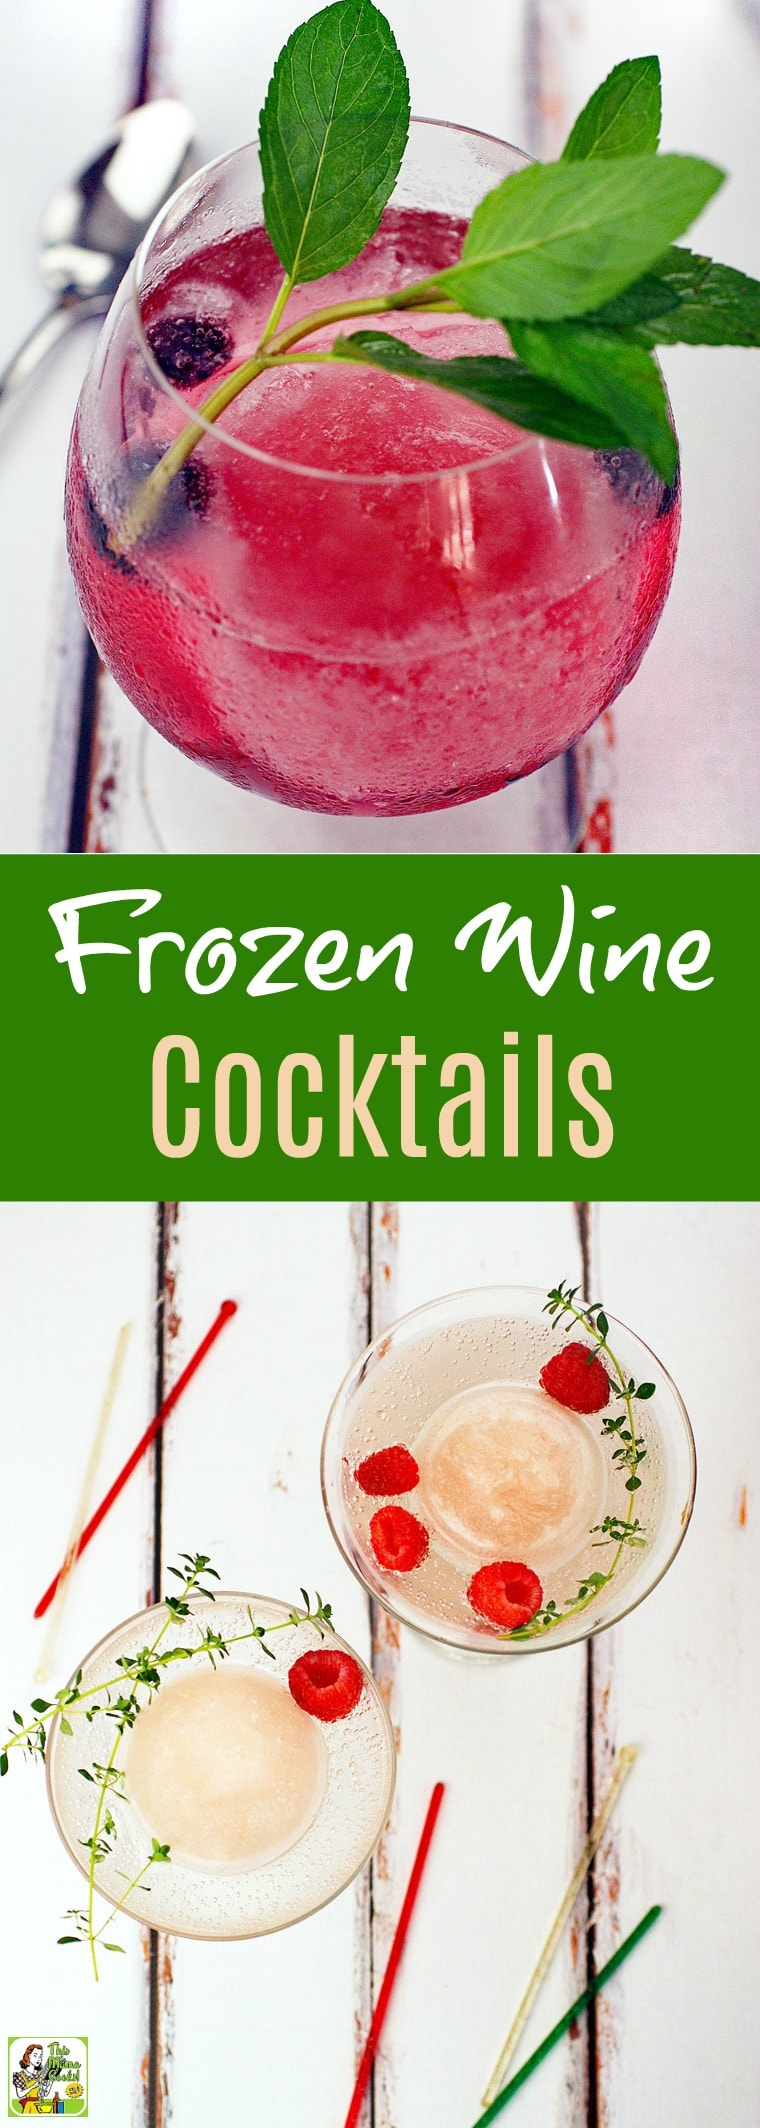 Looking for unique frozen wine drink recipes or blender cocktail recipes for your cookout party? Make up a batch of these Frozen Wine Cocktails. Get recipes for both a skinny wine cocktail and a slushy wine cocktail. #recipe #easy #recipeoftheday #healthyrecipes #glutenfree #easyrecipes #wine #skinnycocktails #cocktails #winecocktails #cocktailrecipe